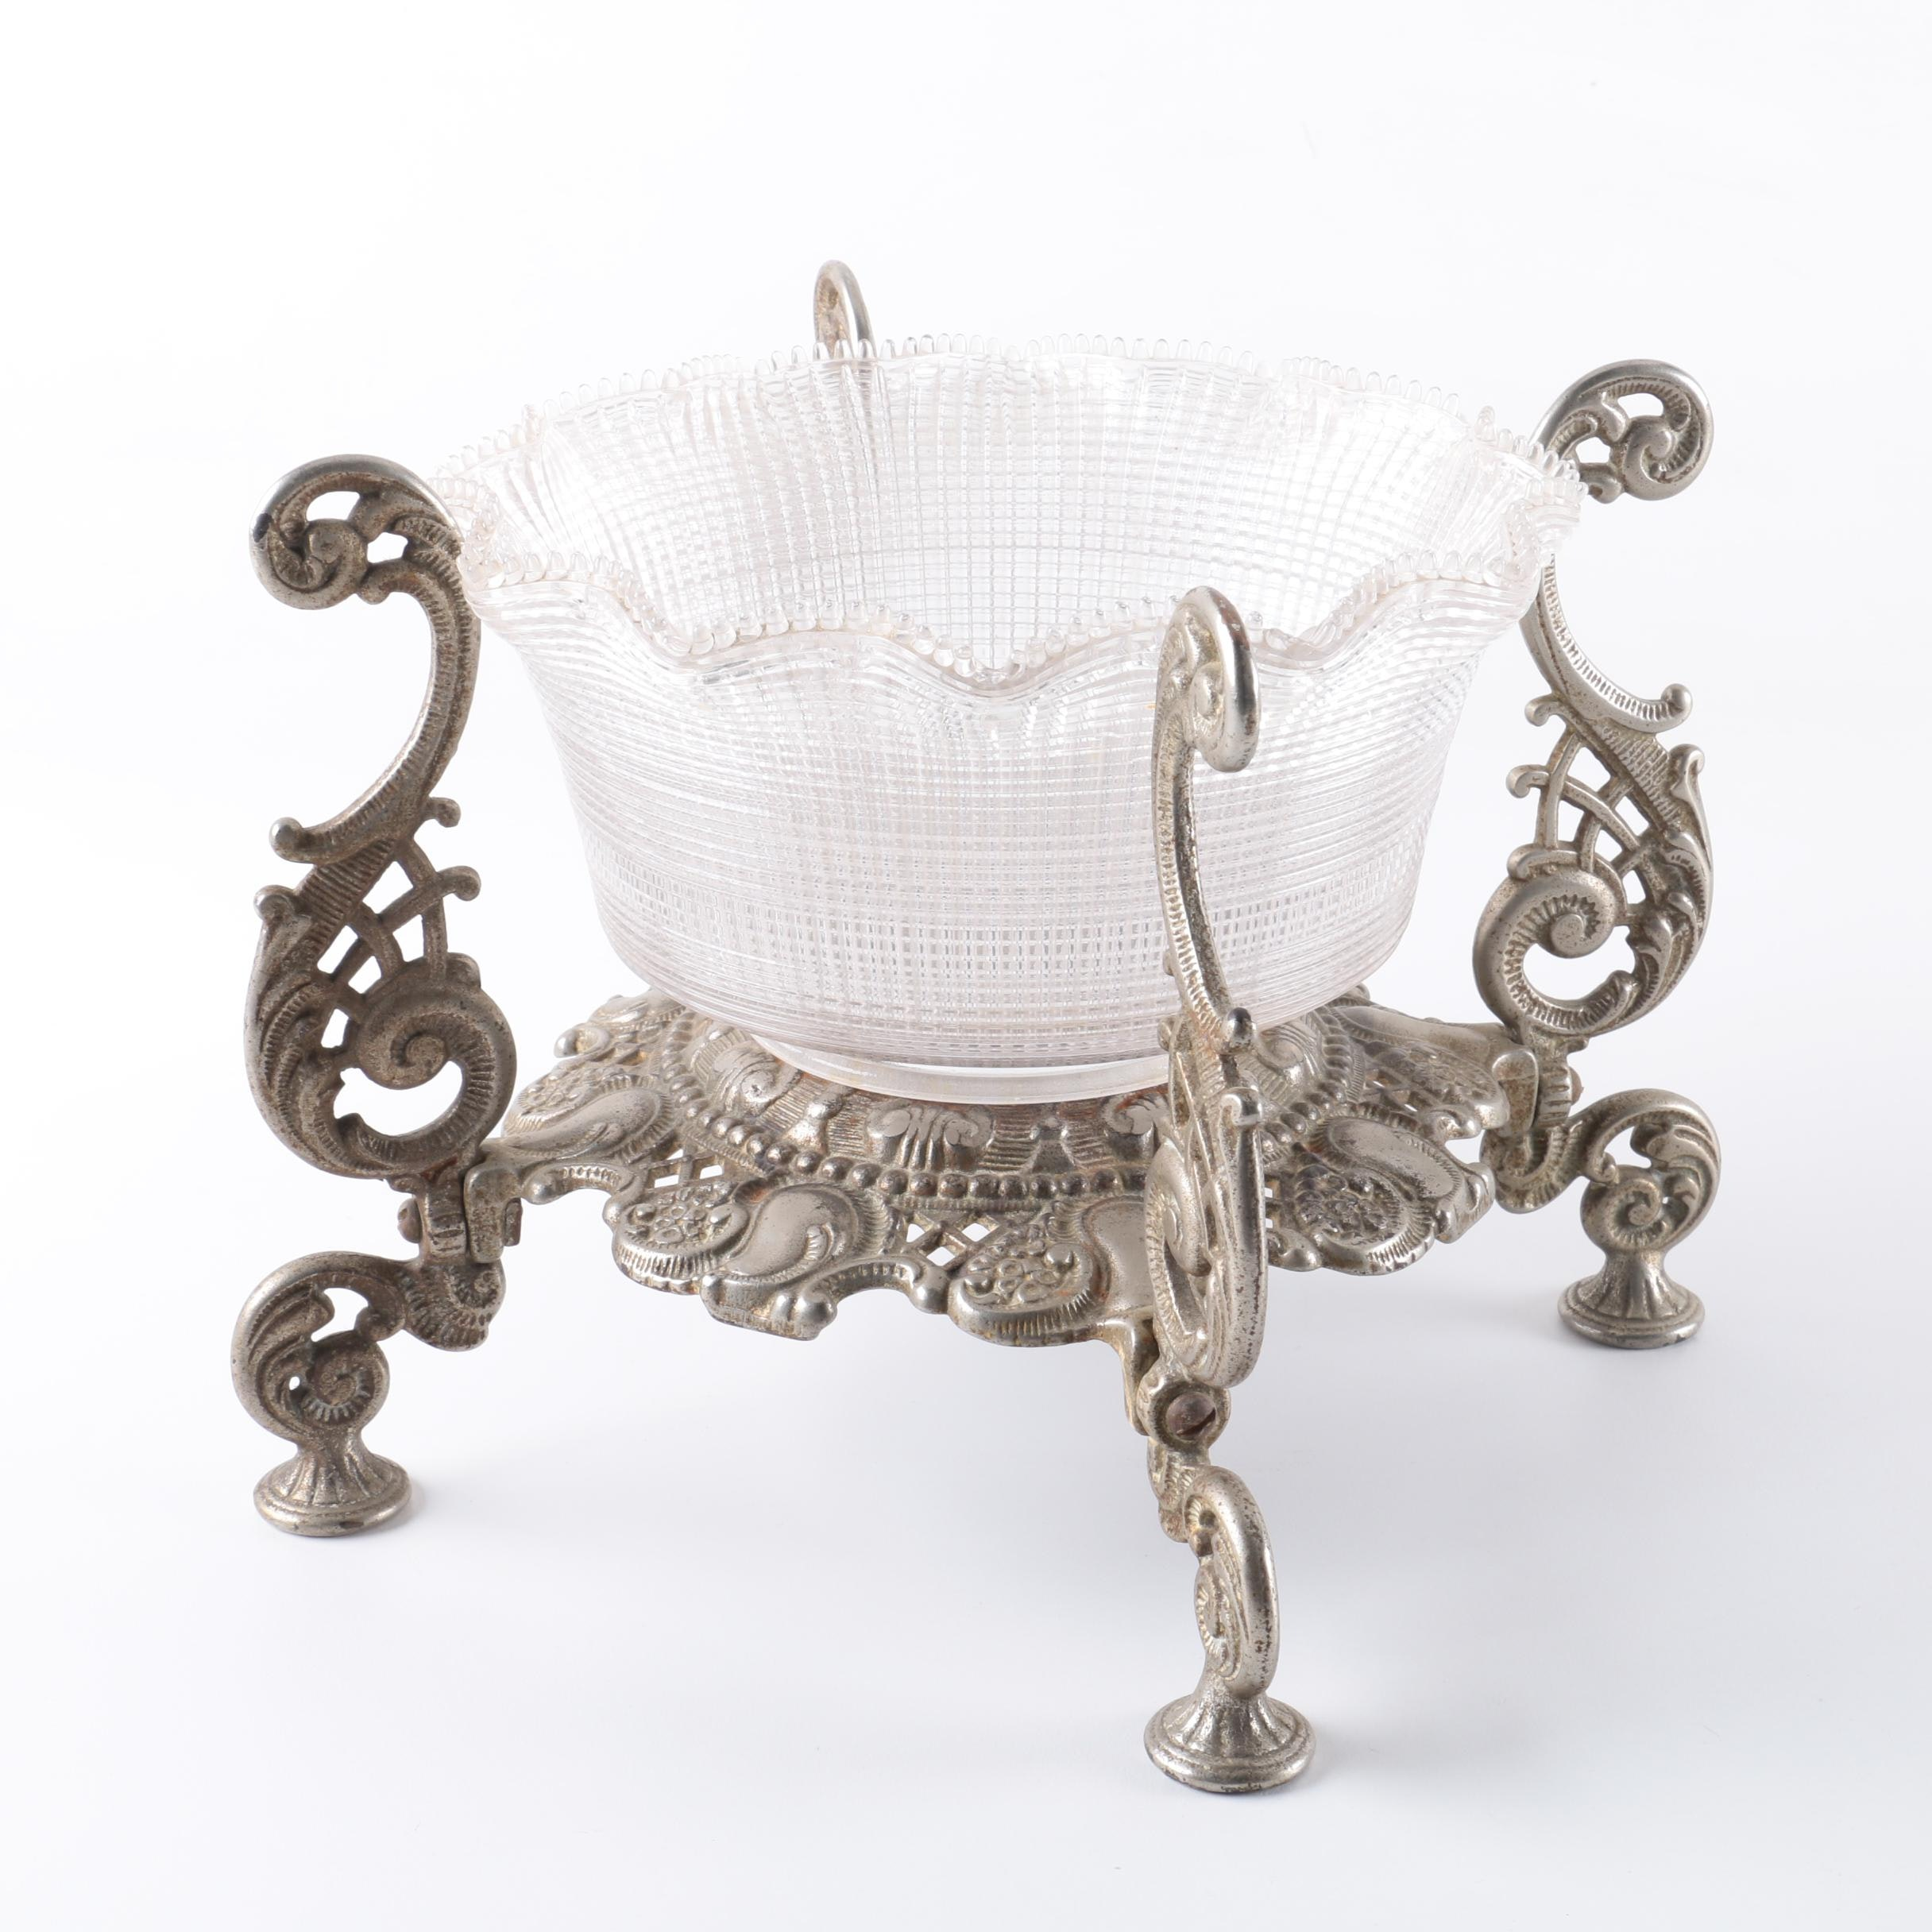 Ornate Metal and Glass Serving Dish